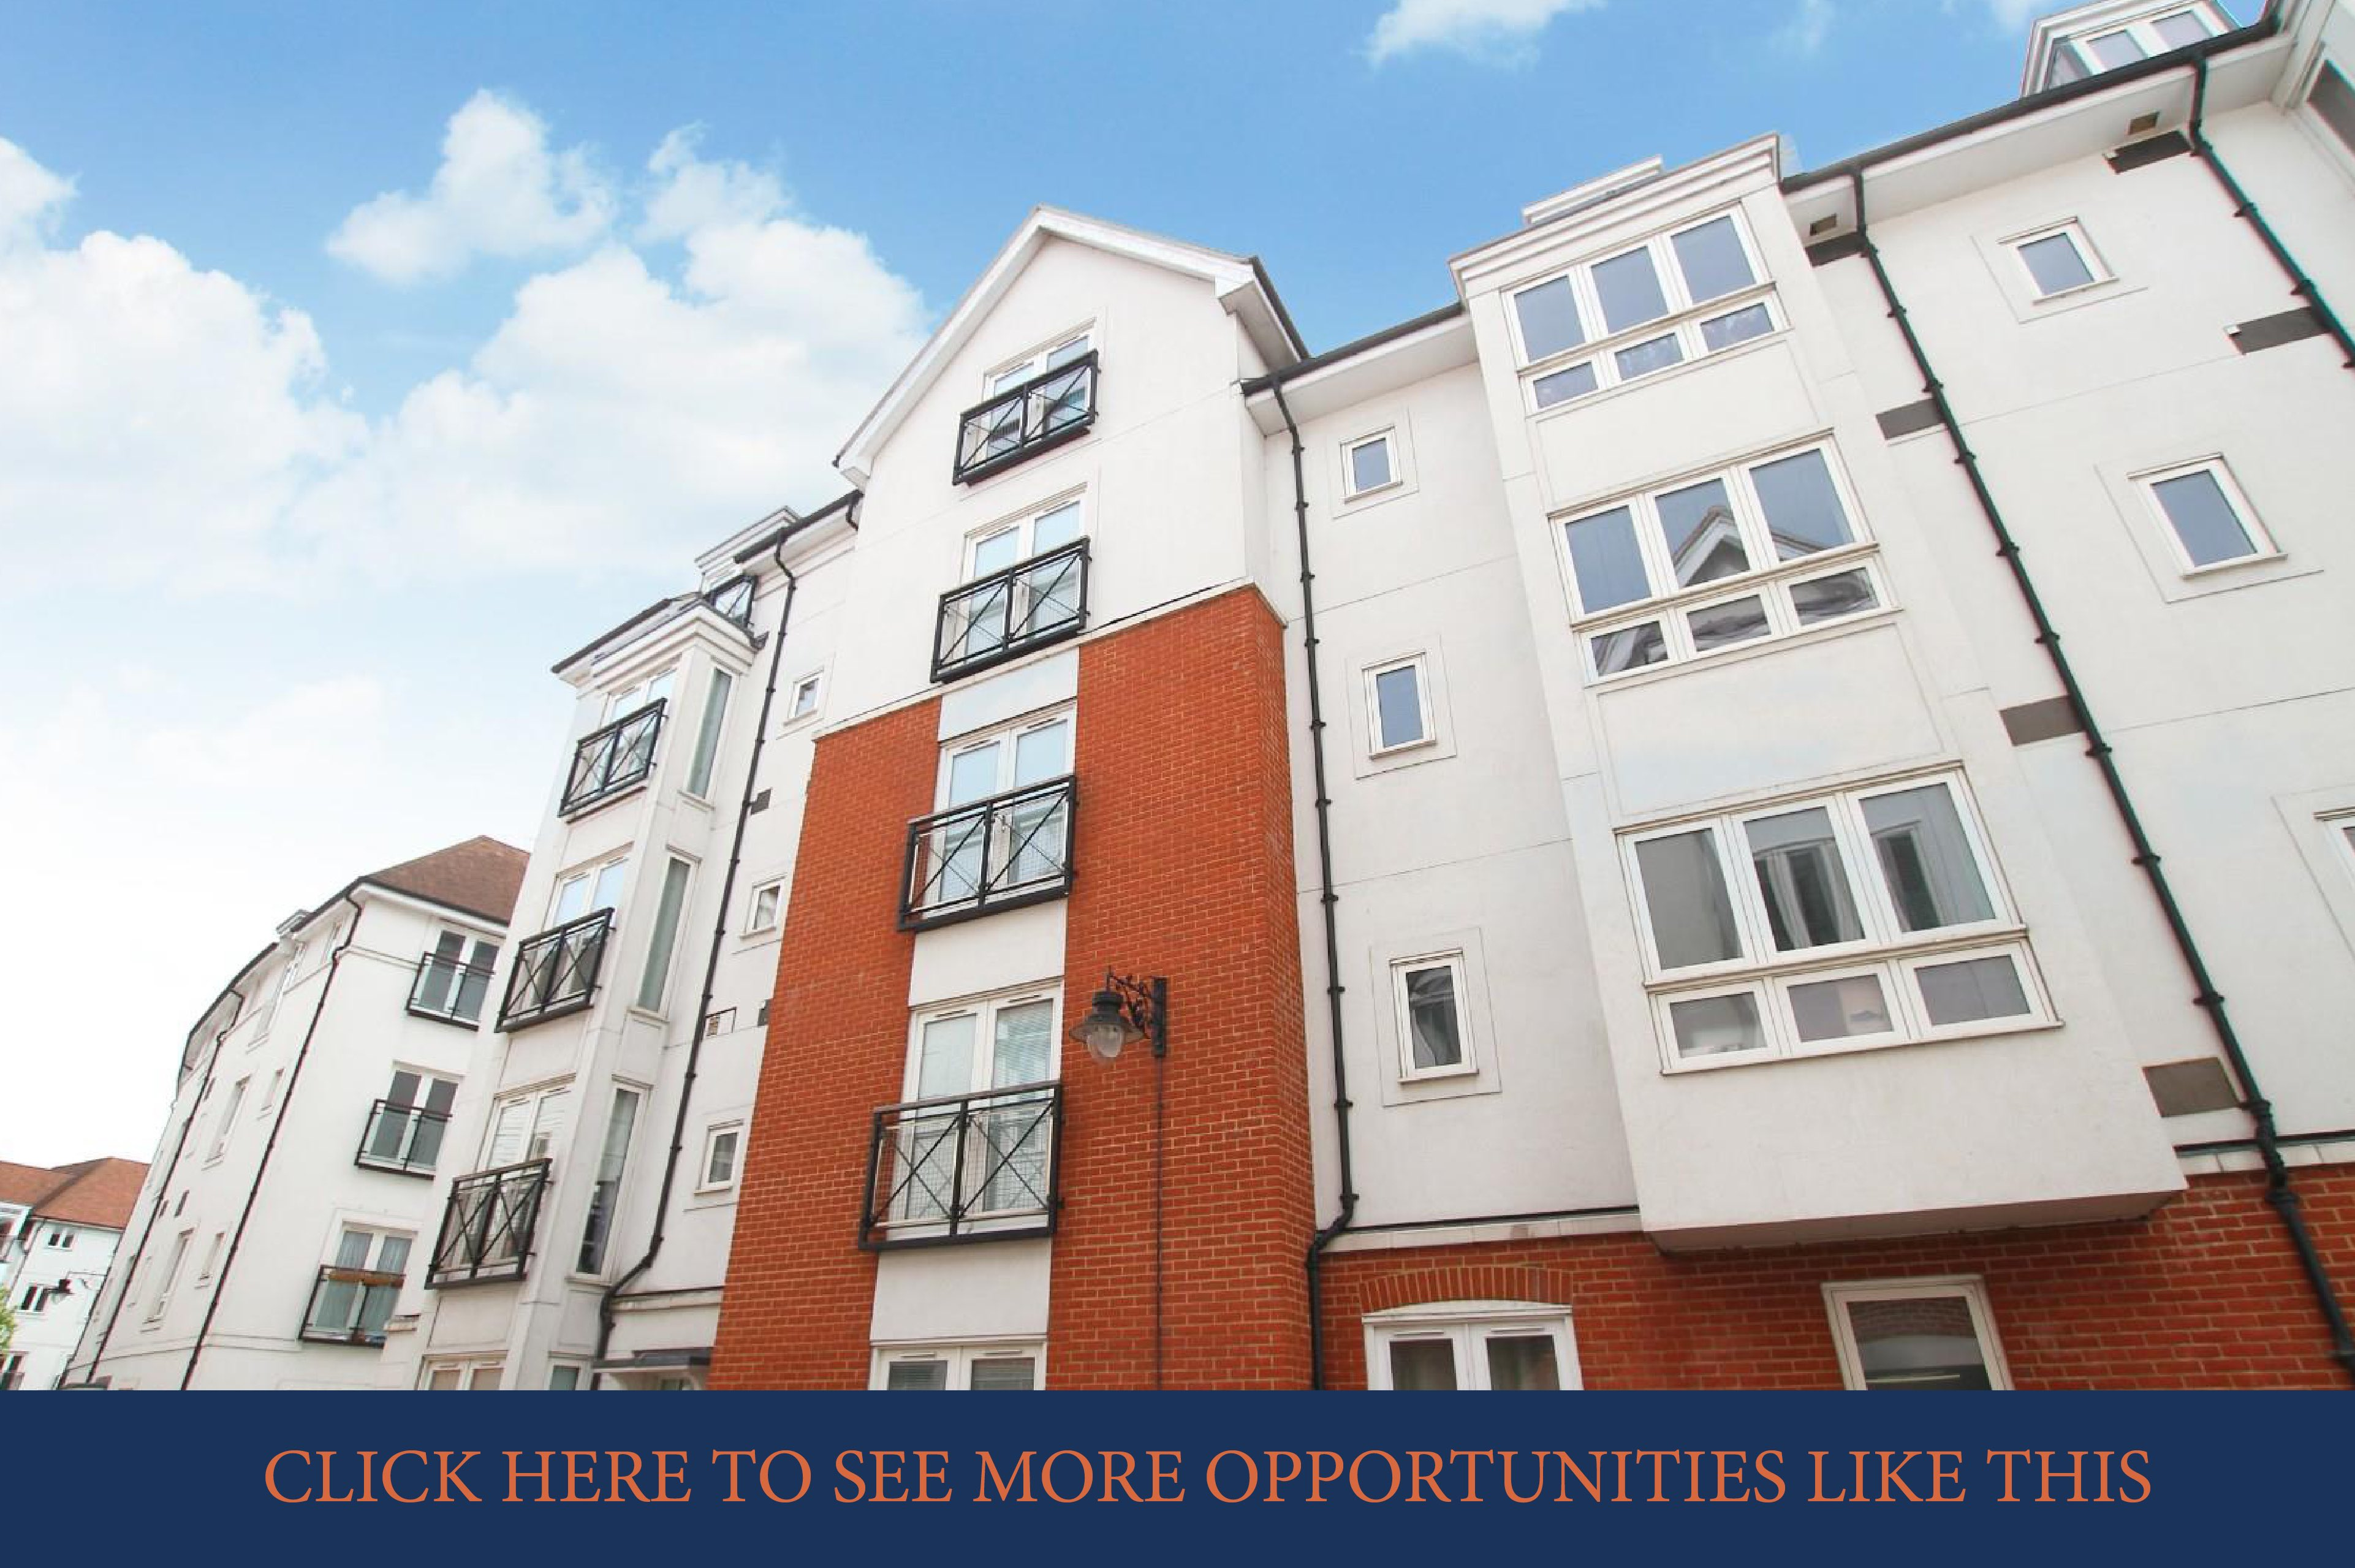 MORE OPPORTUNITIES CANTERBURY